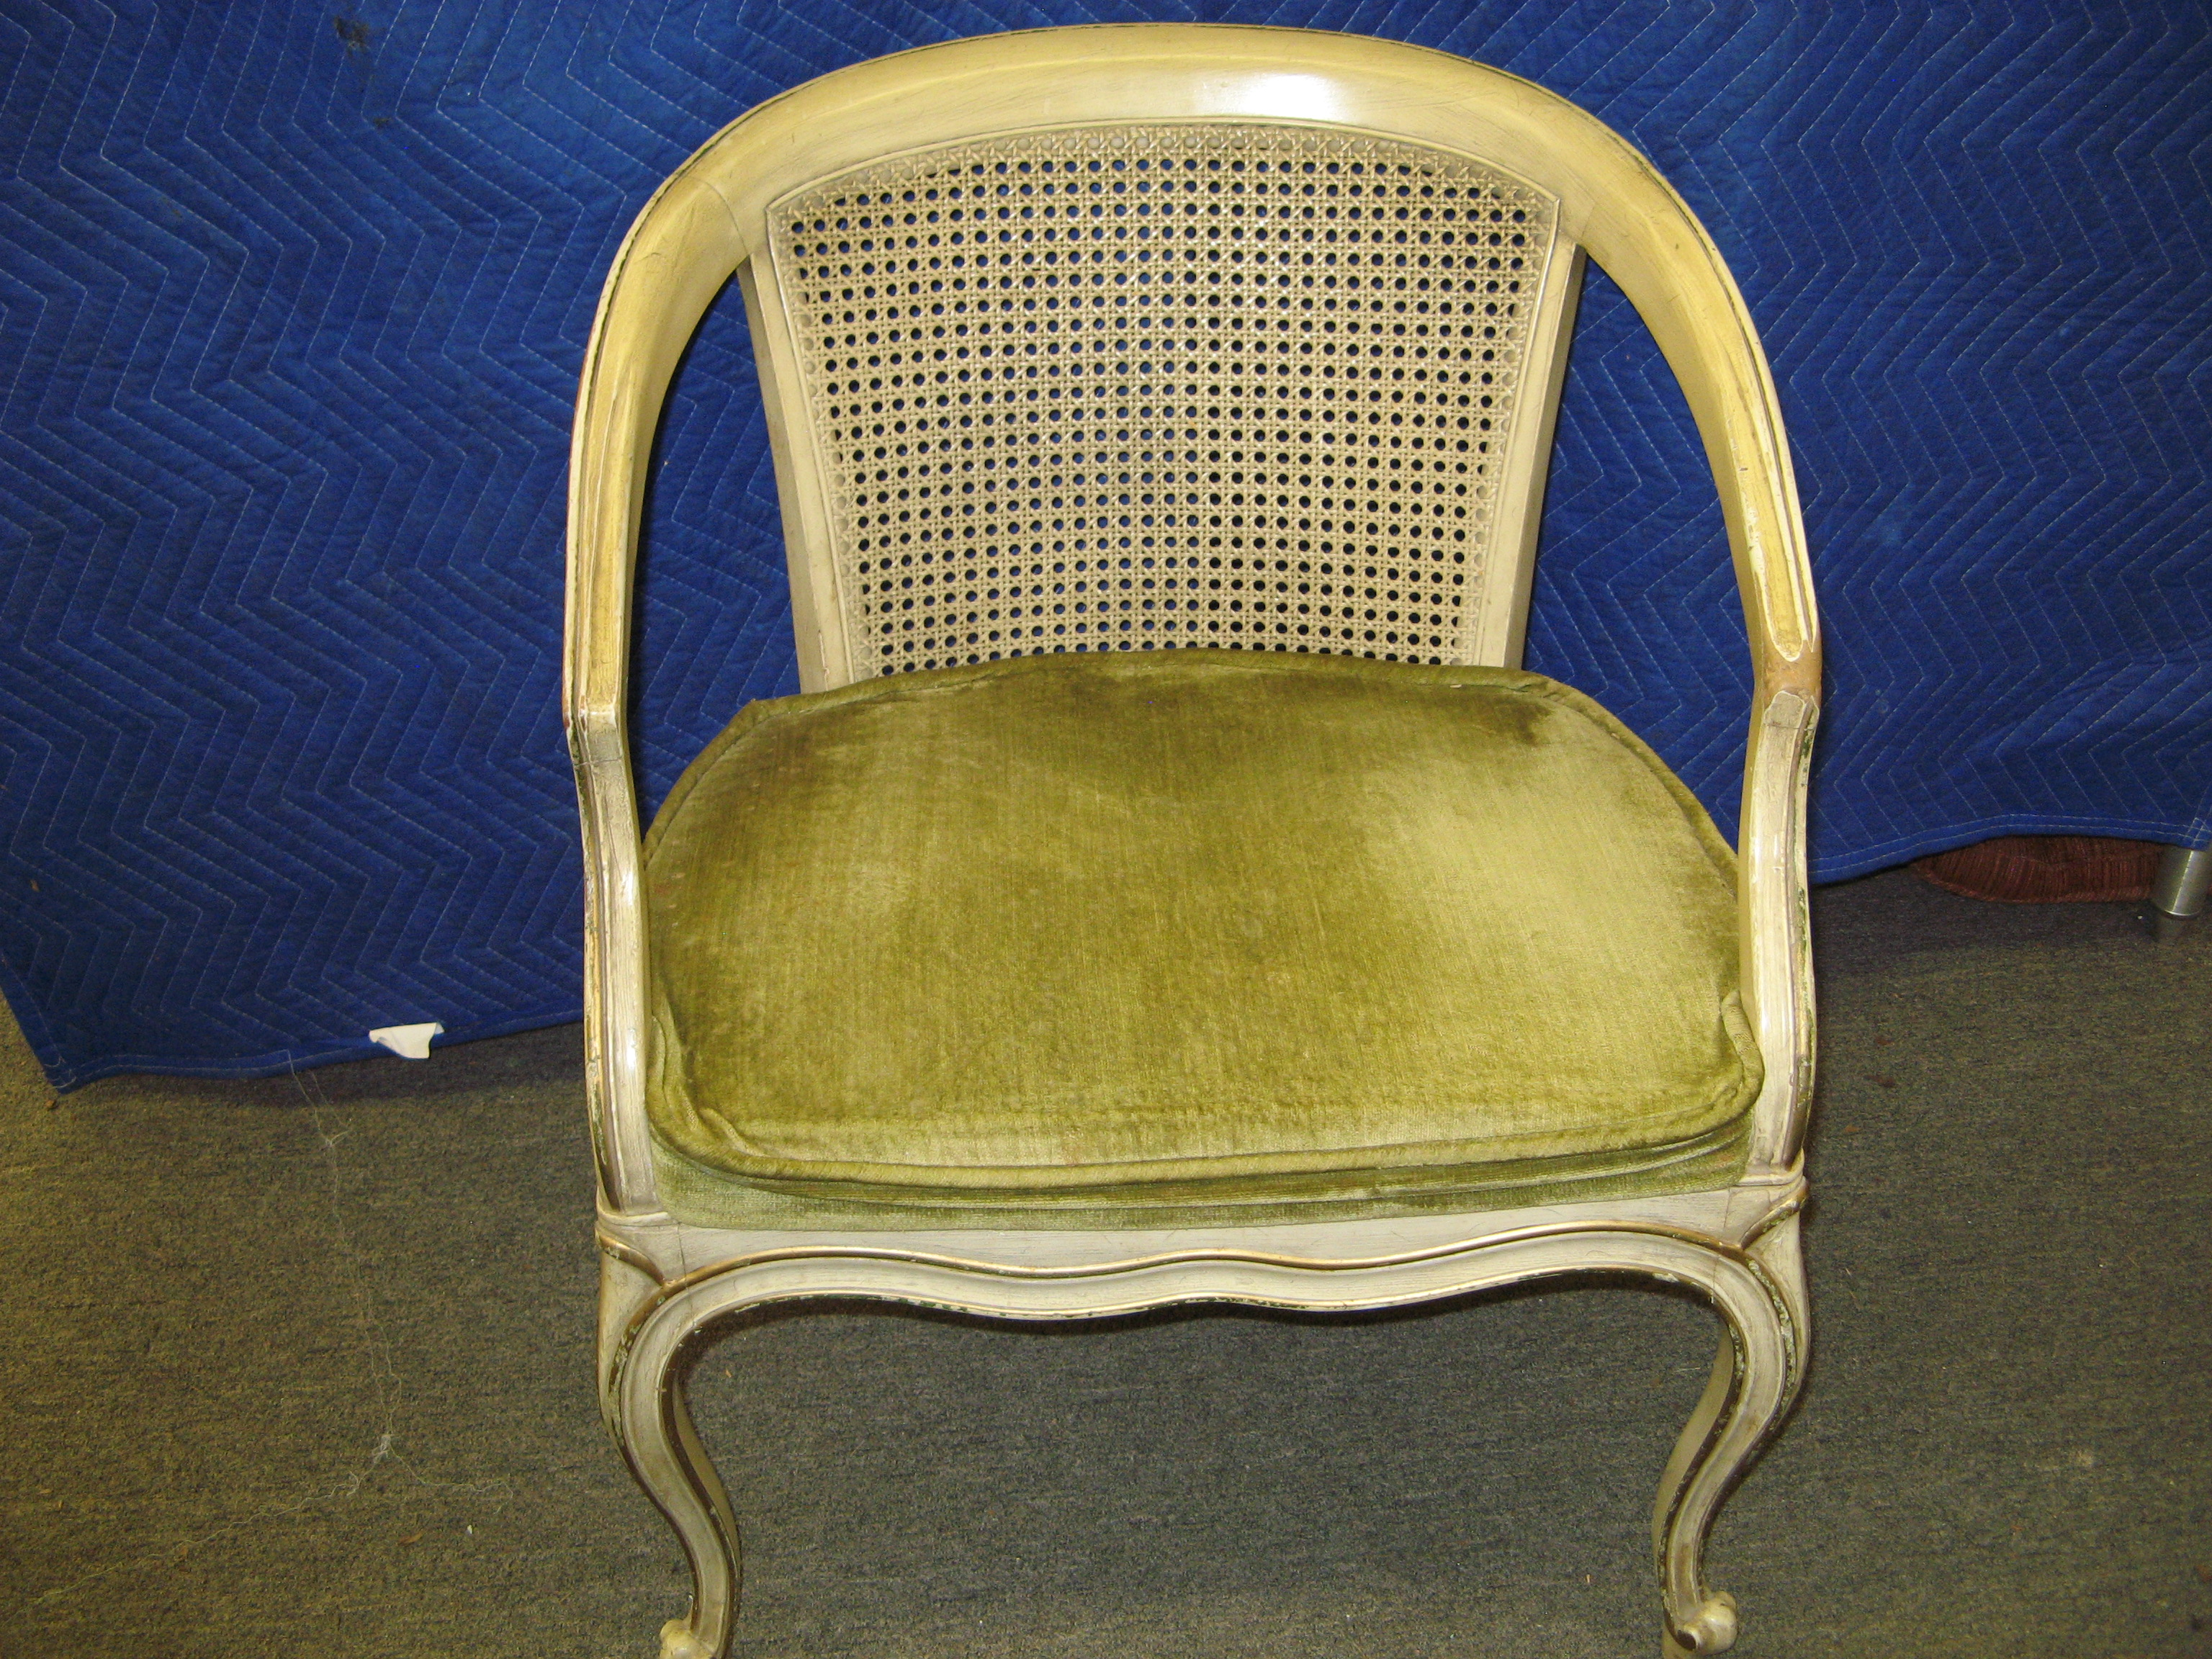 Drexel French Provincial Accent Chair with Cane Back & Seat Cushion, Cream